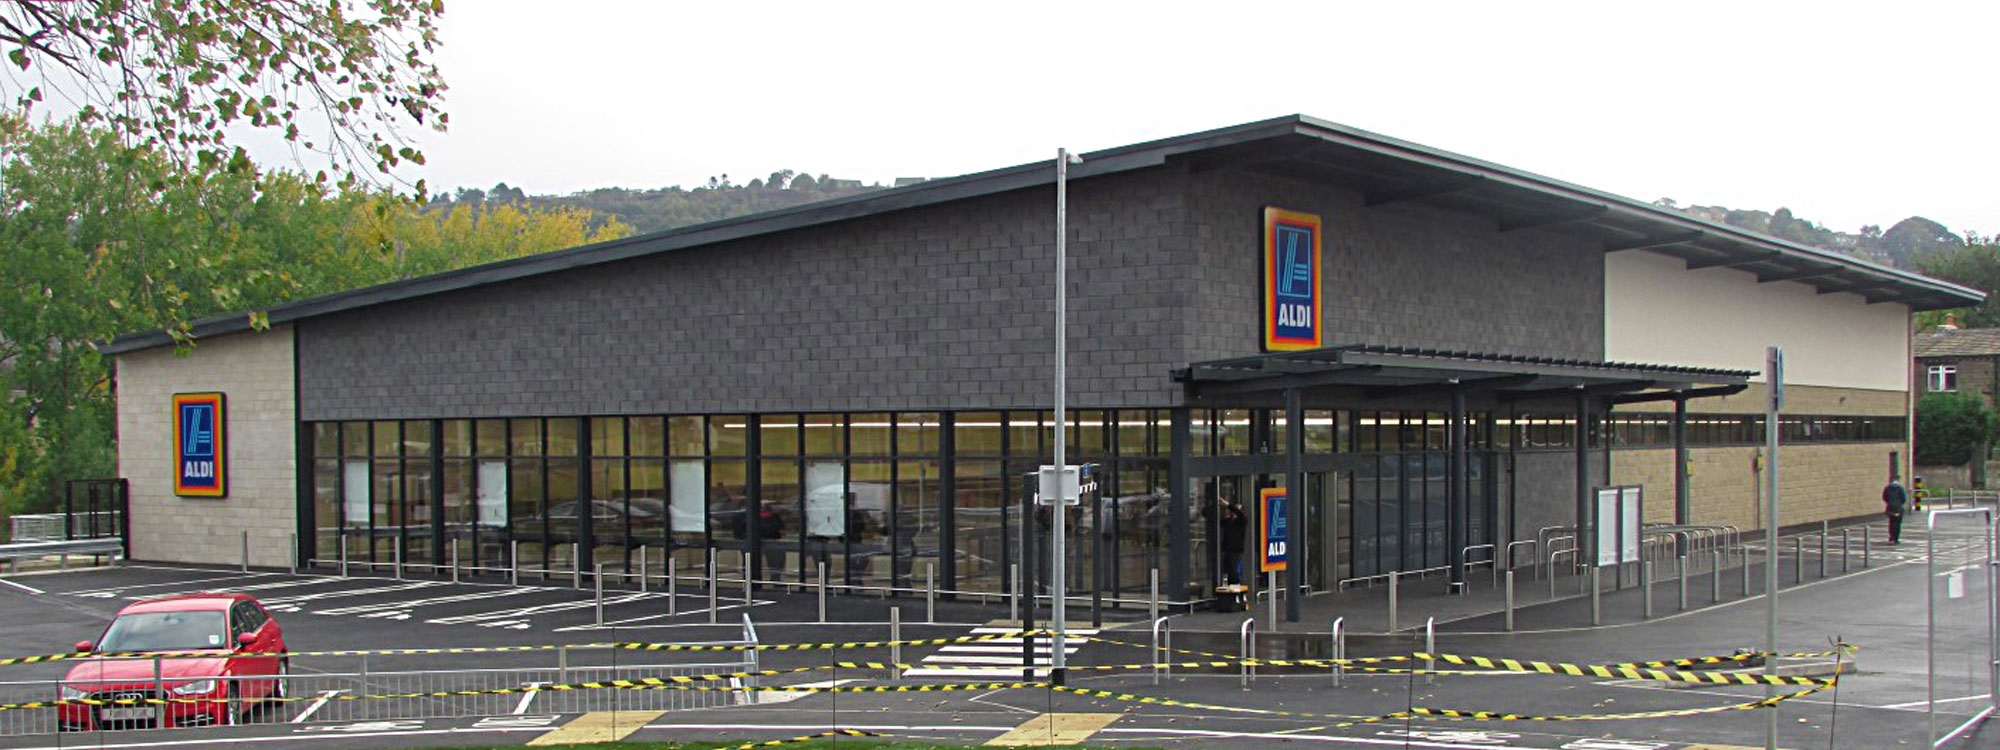 Aldi Stores Limited: party wall works